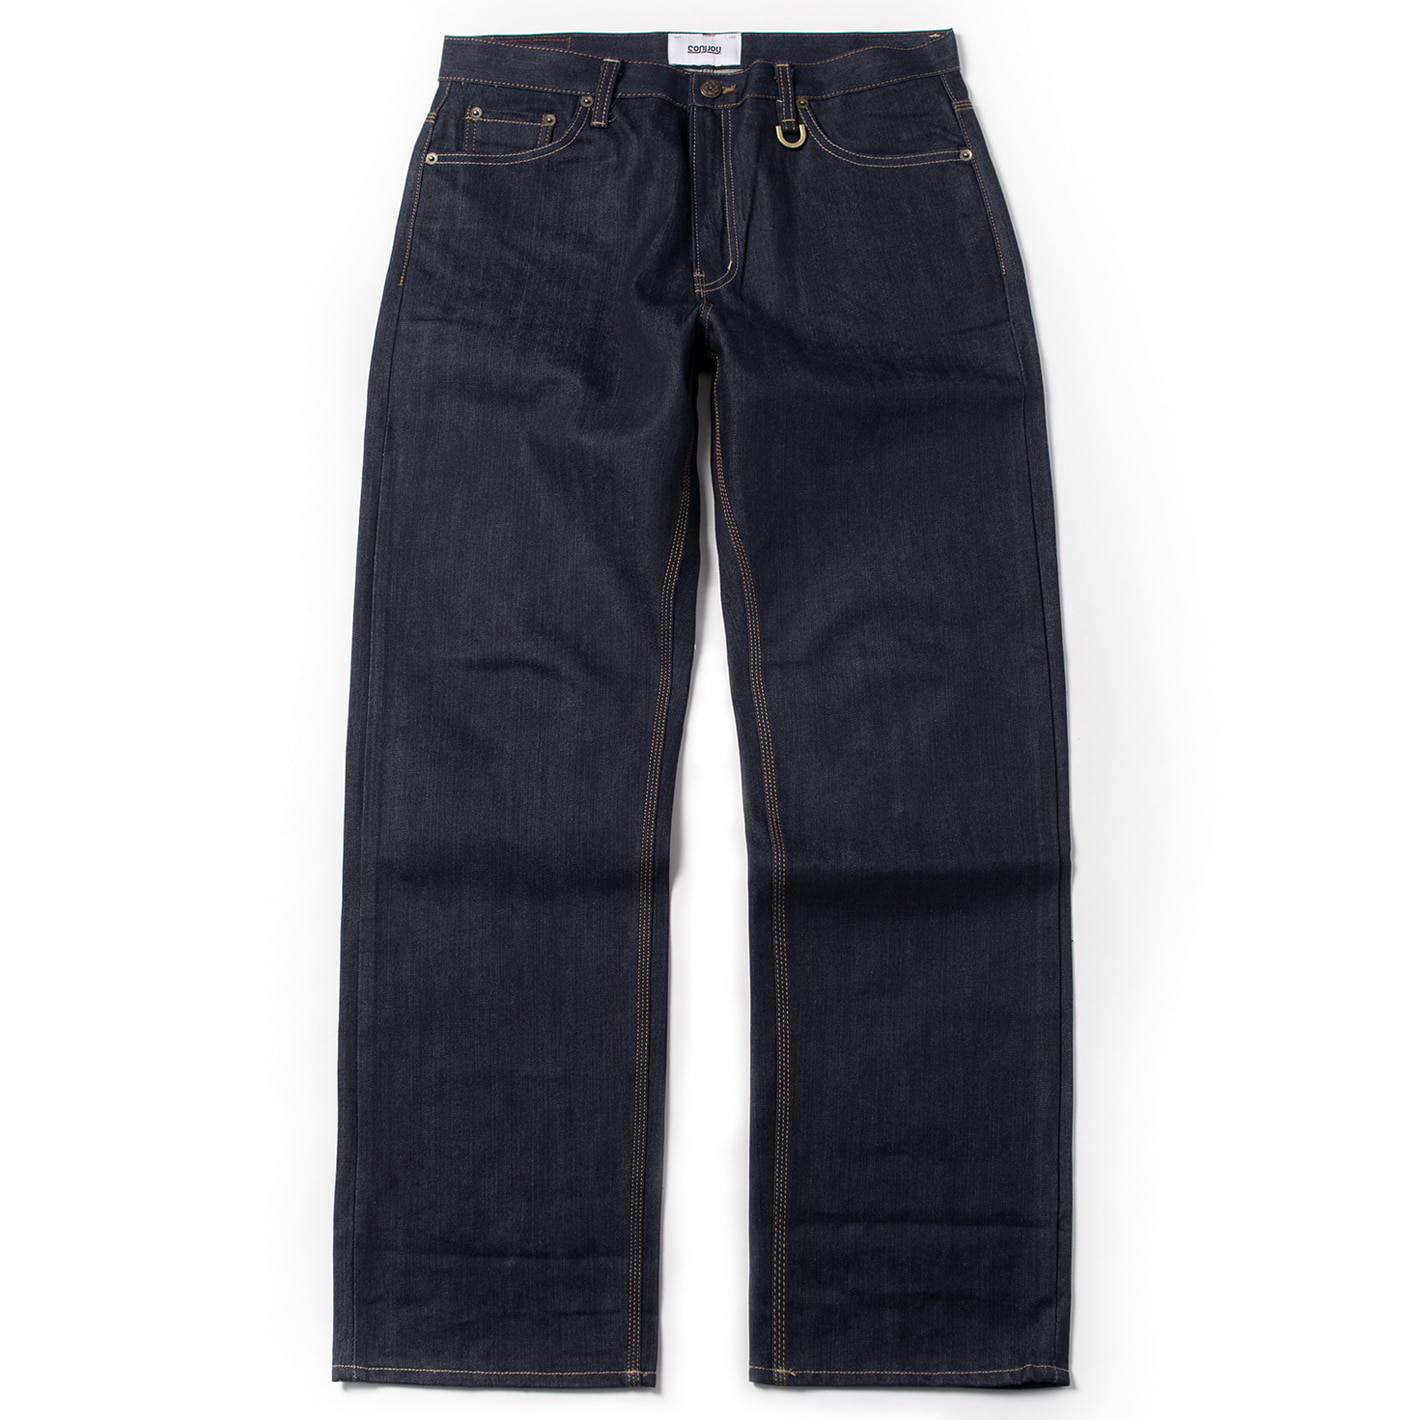 [콘보이] 701 Ingrey Denim pants